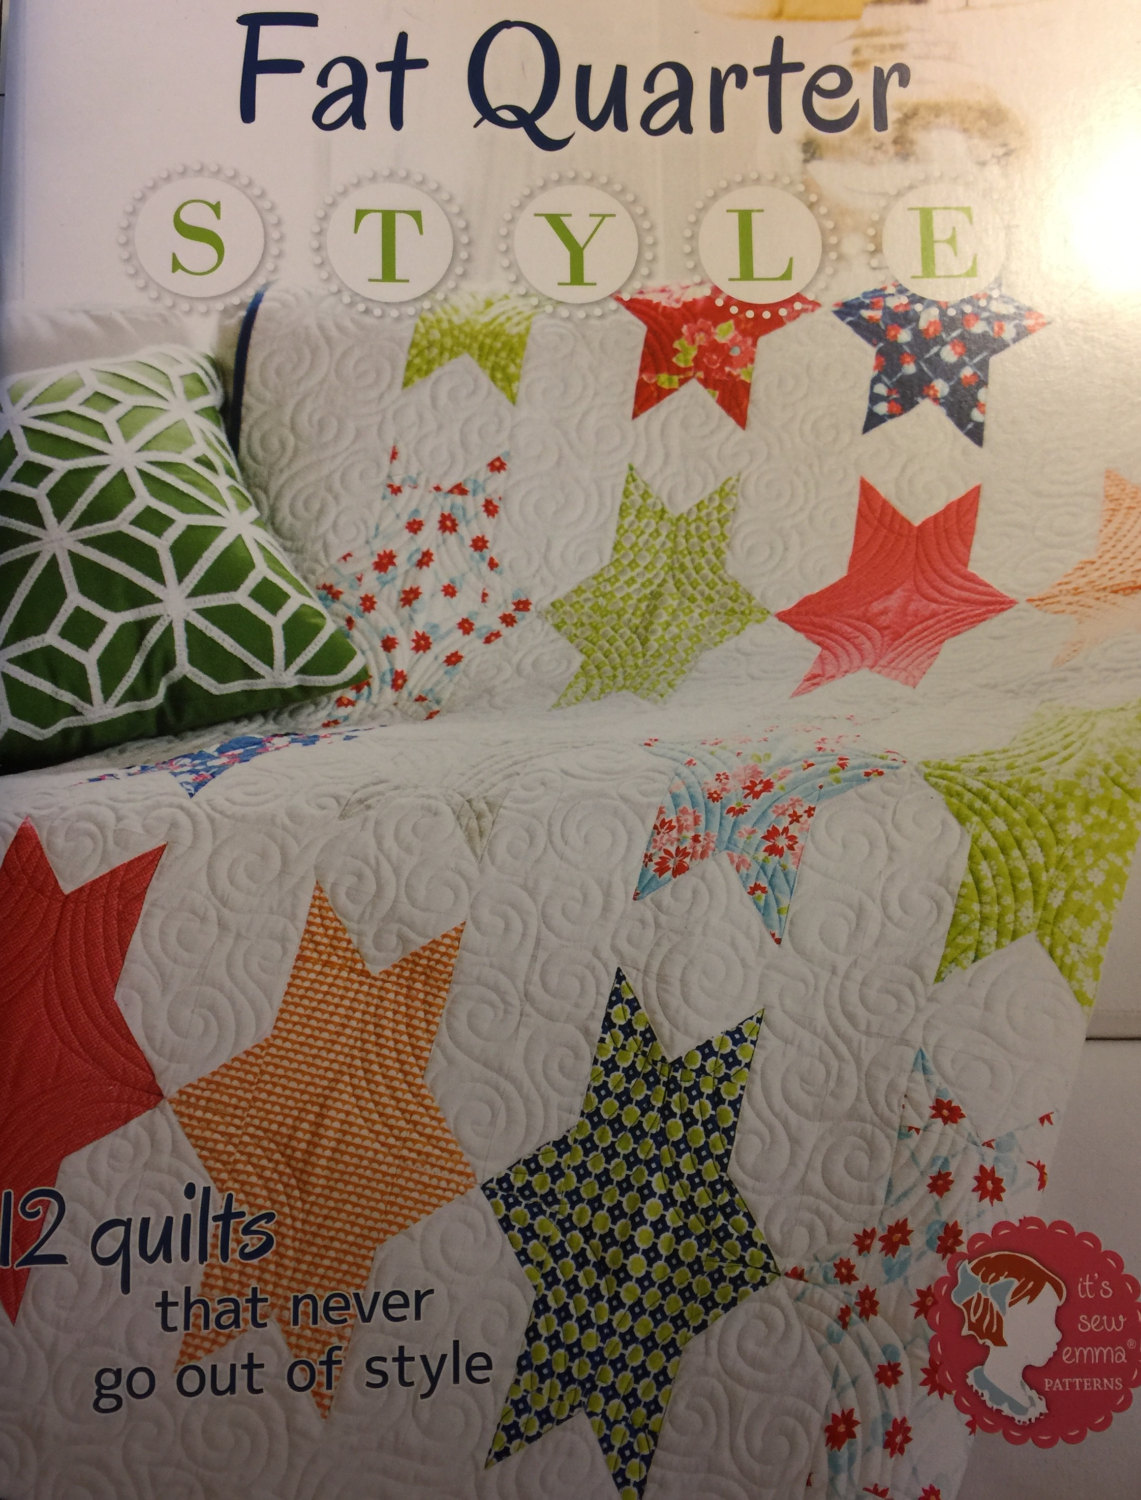 Fat Quarters Quilting Book - patterns shown included in the book